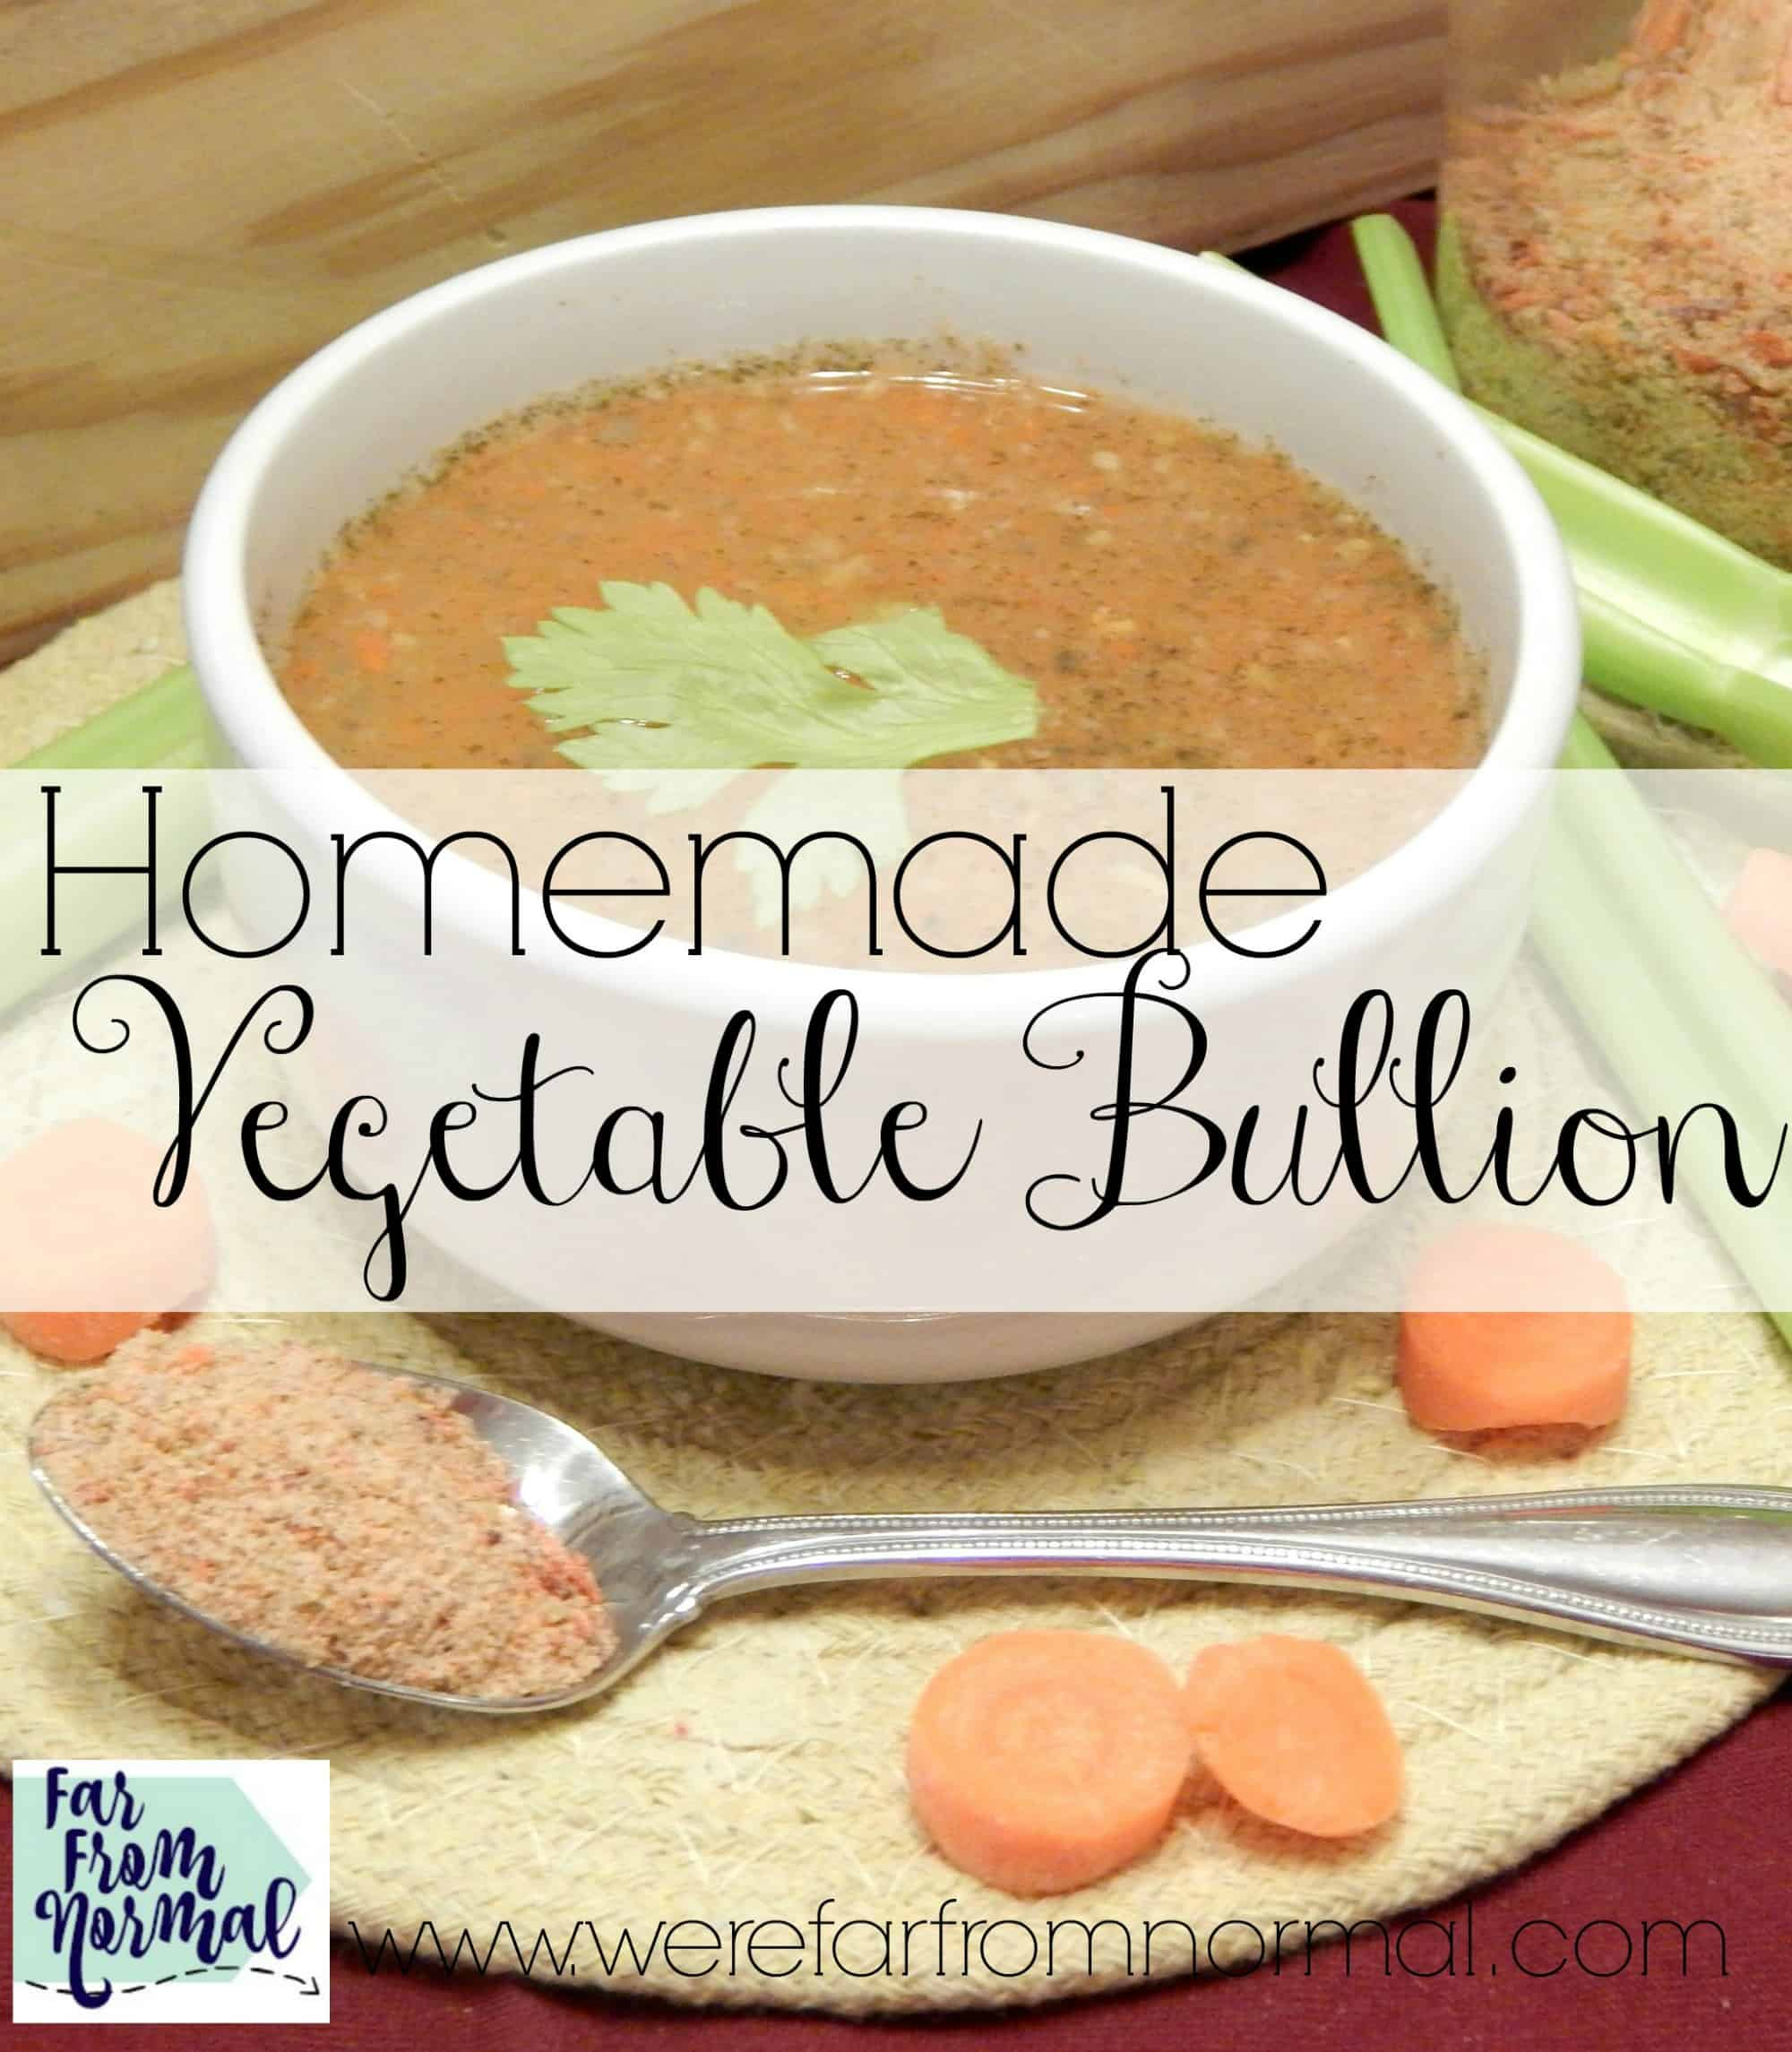 Homemade Vegetable Bullion